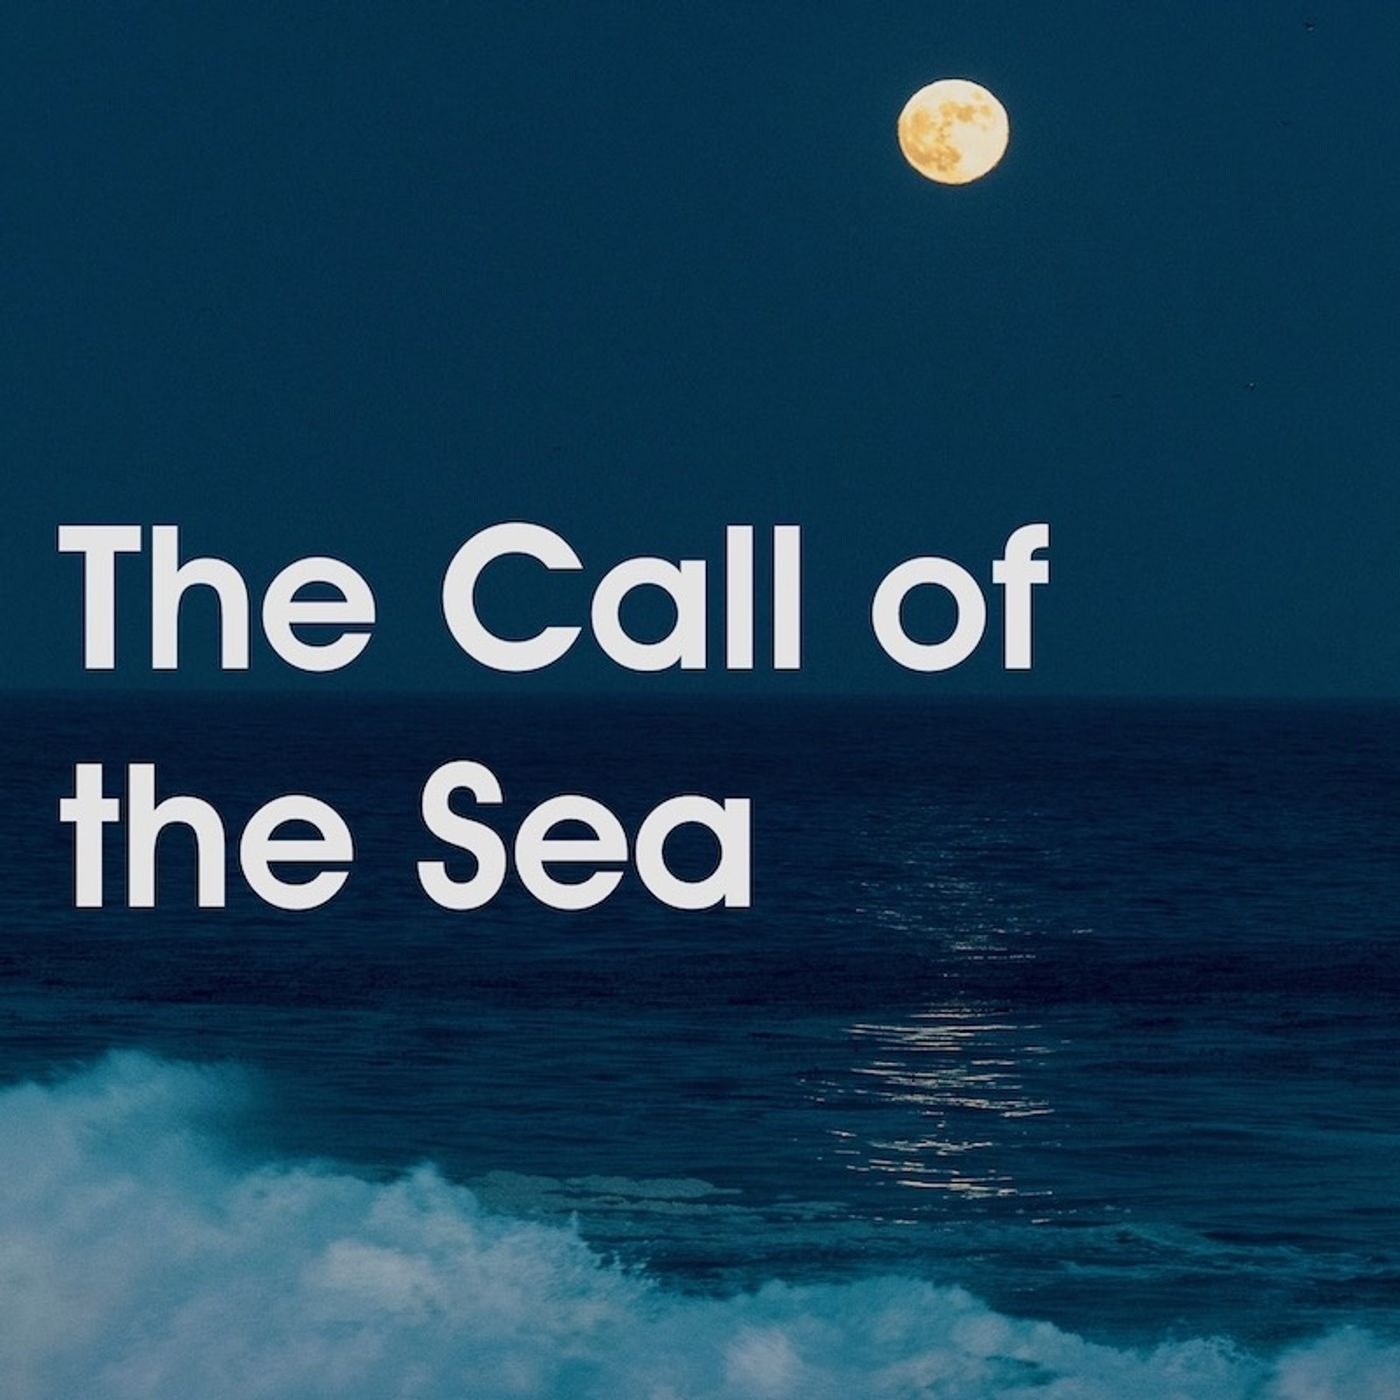 Episode 6 - The Call of the Sea